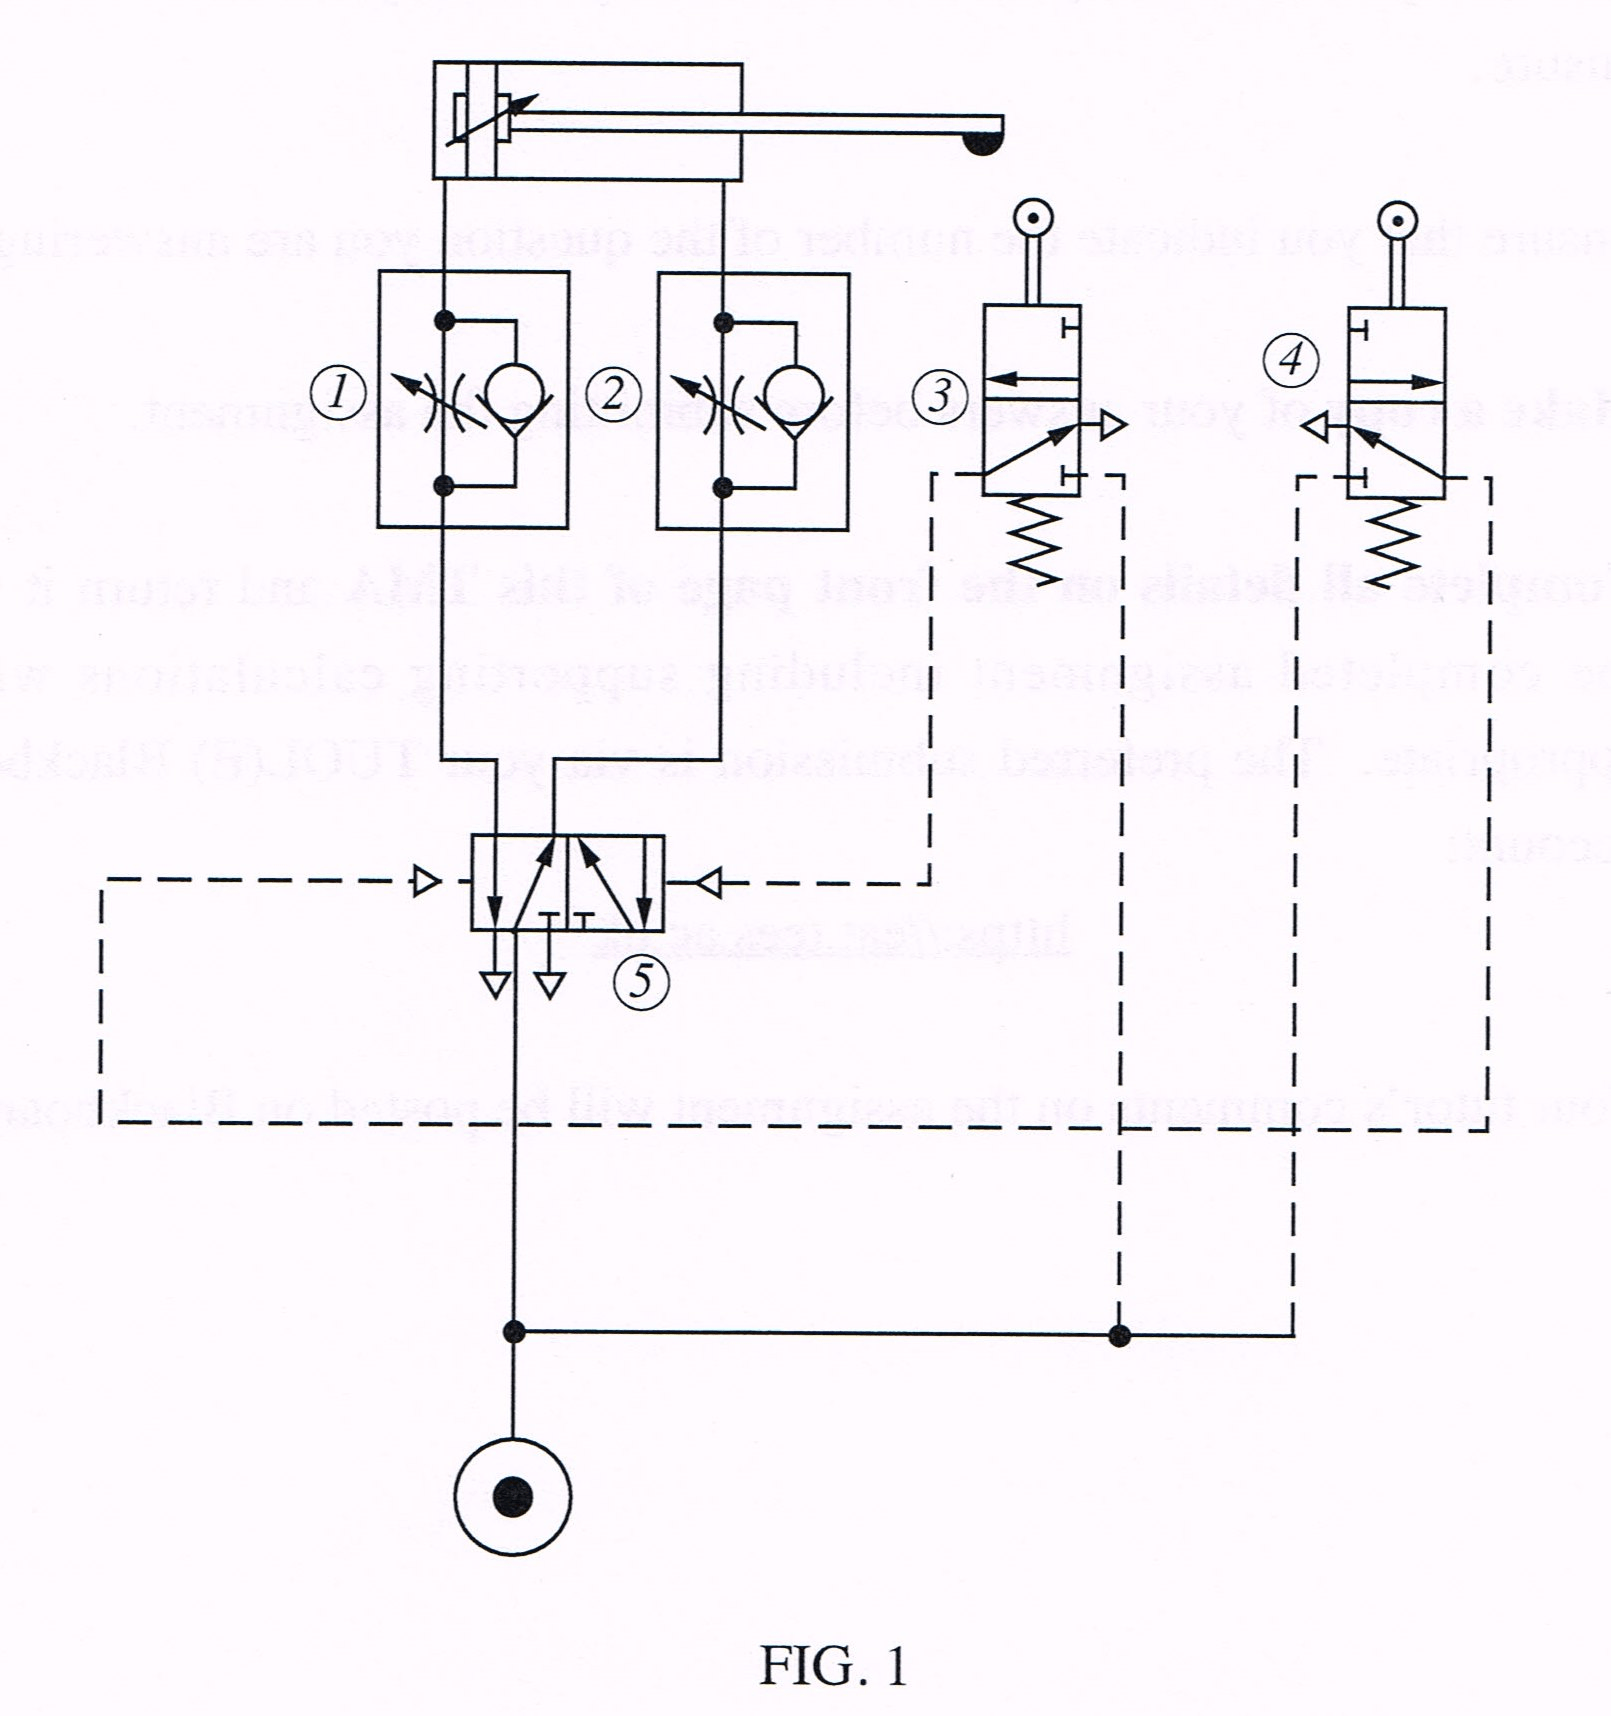 U Haul Wiring Diagram 7 Way